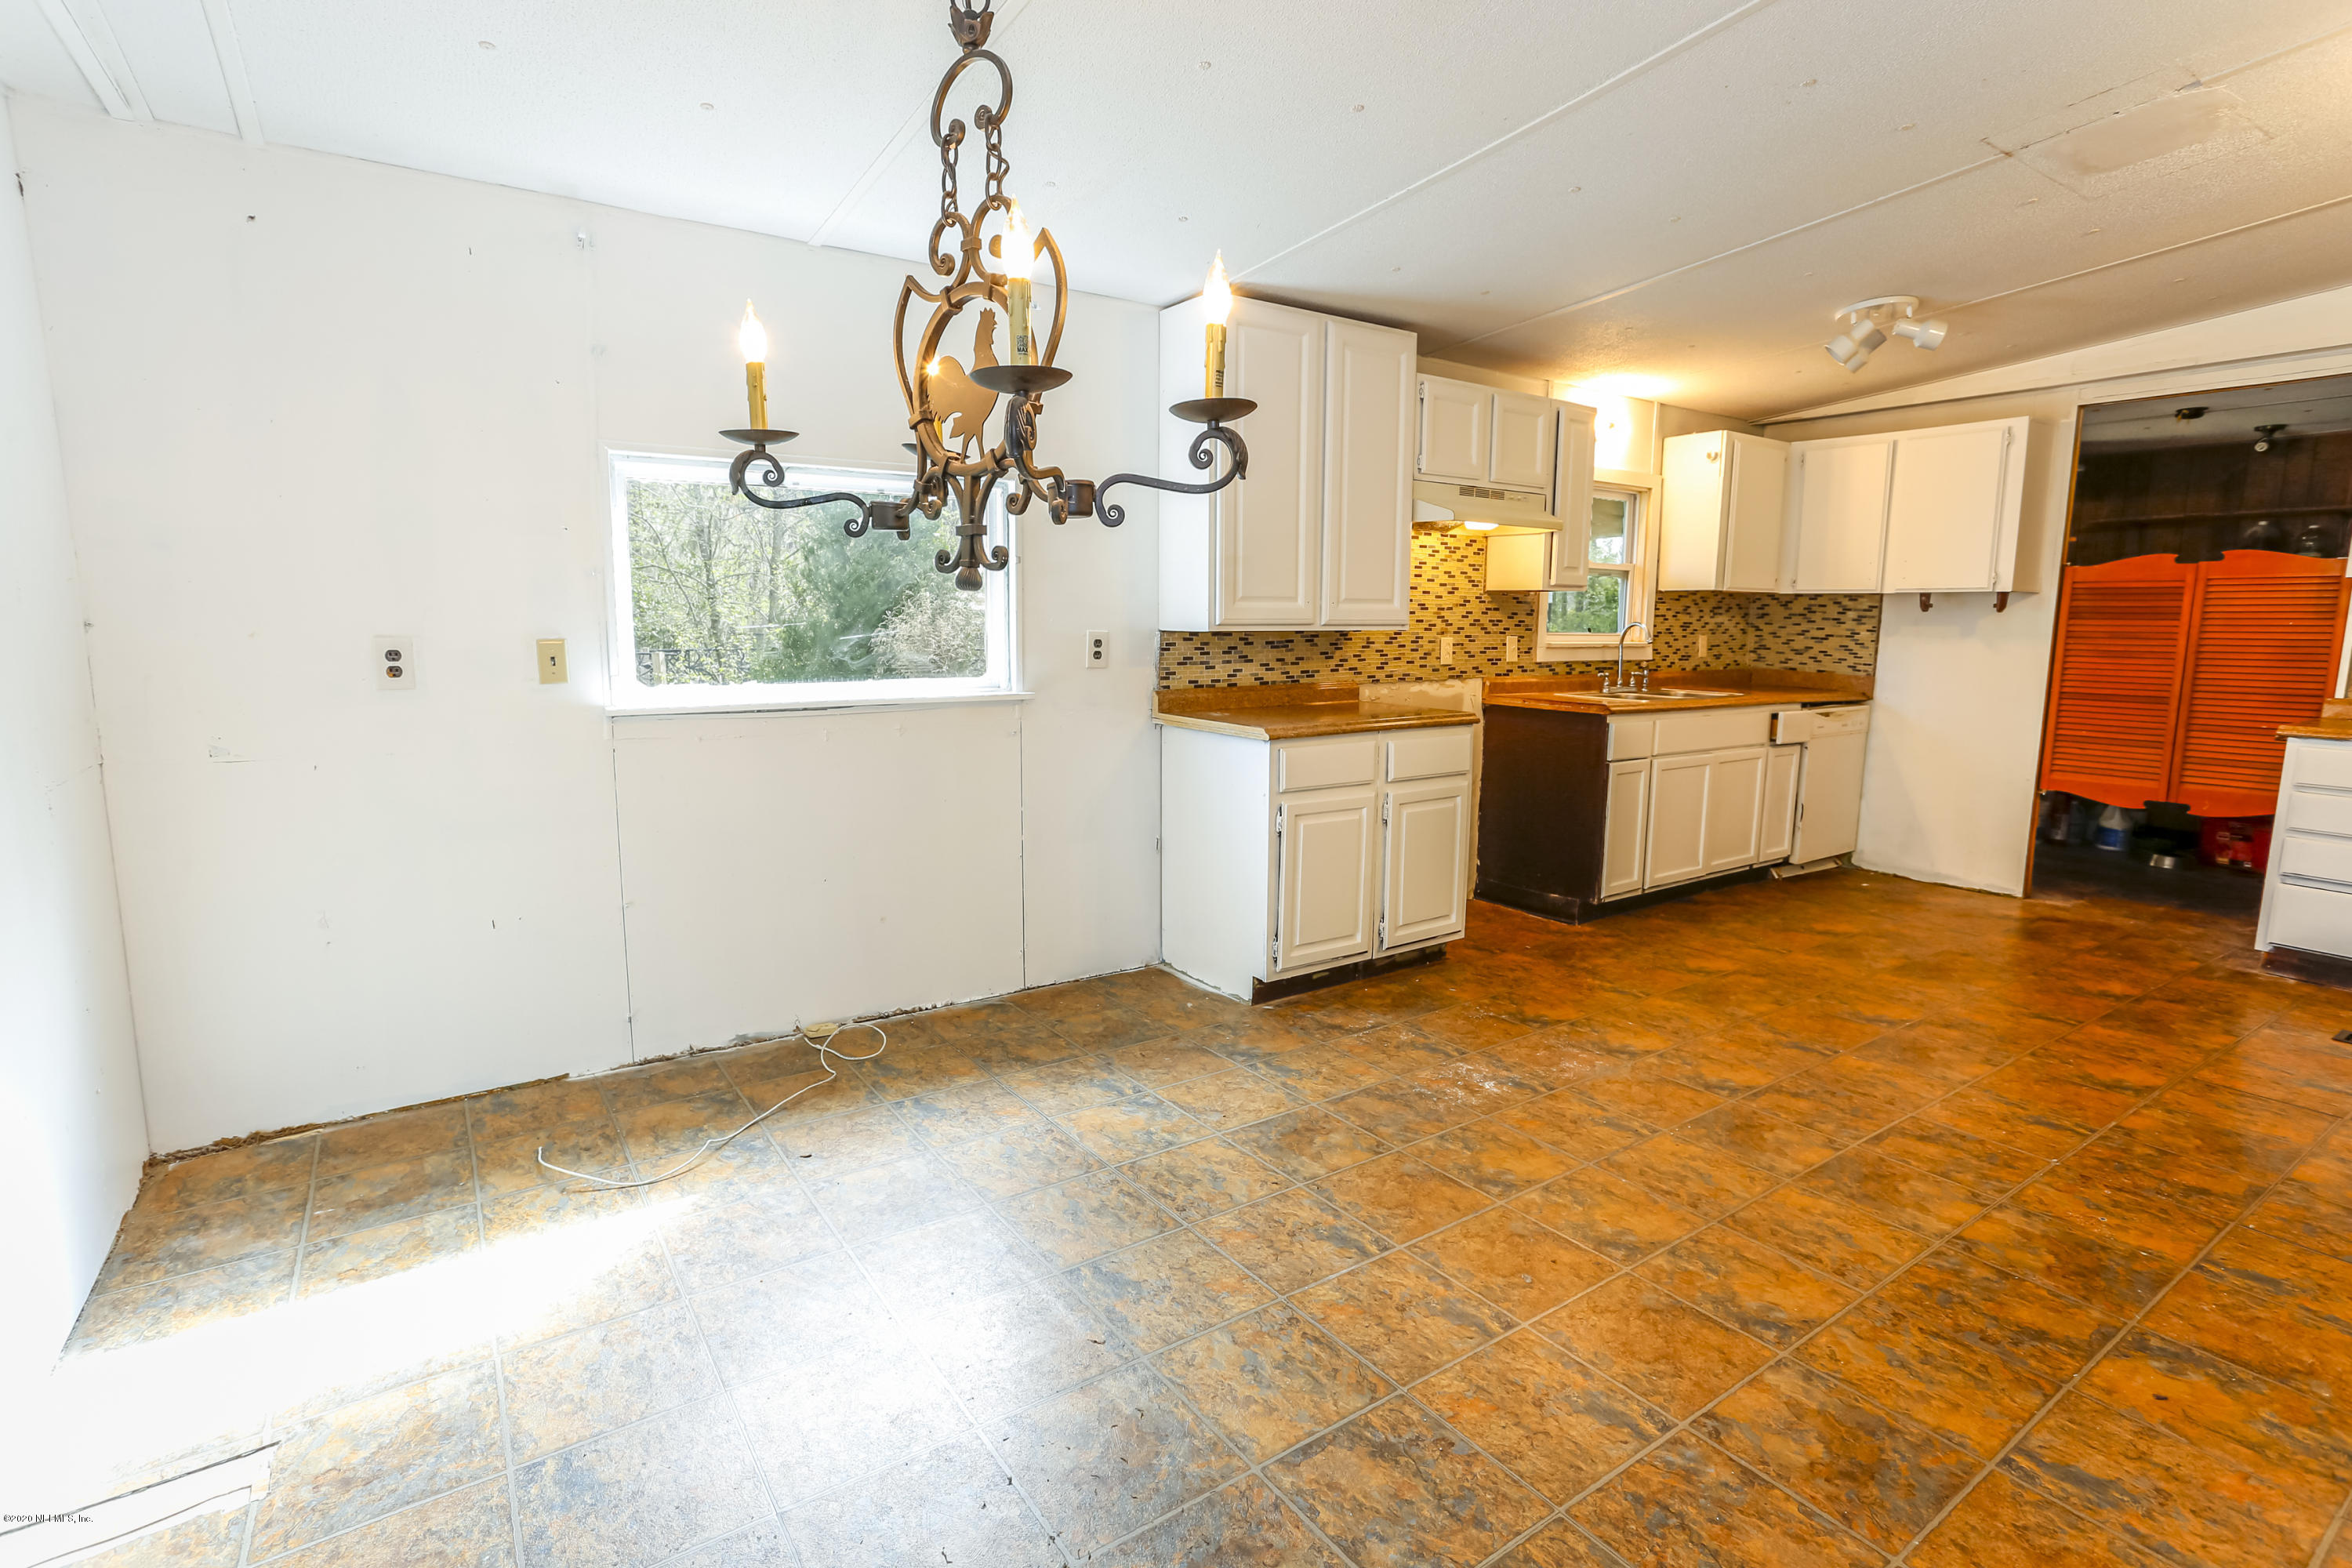 1013 SWEETWATER, MIDDLEBURG, FLORIDA 32068, 4 Bedrooms Bedrooms, ,2 BathroomsBathrooms,Residential,For sale,SWEETWATER,1033877